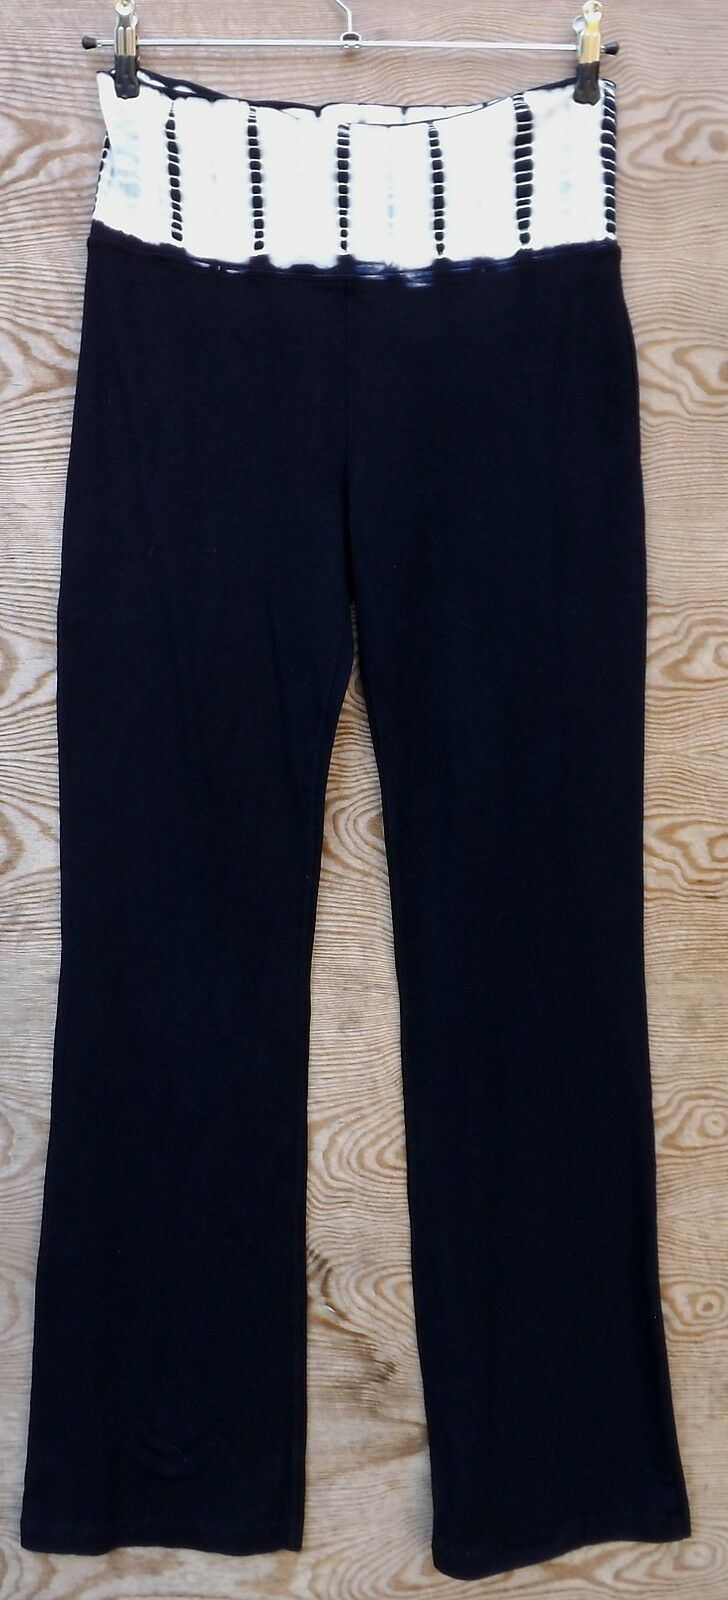 PrAna Women's Amber Pant, Size  L, Elastic Women's Pants  all products get up to 34% off